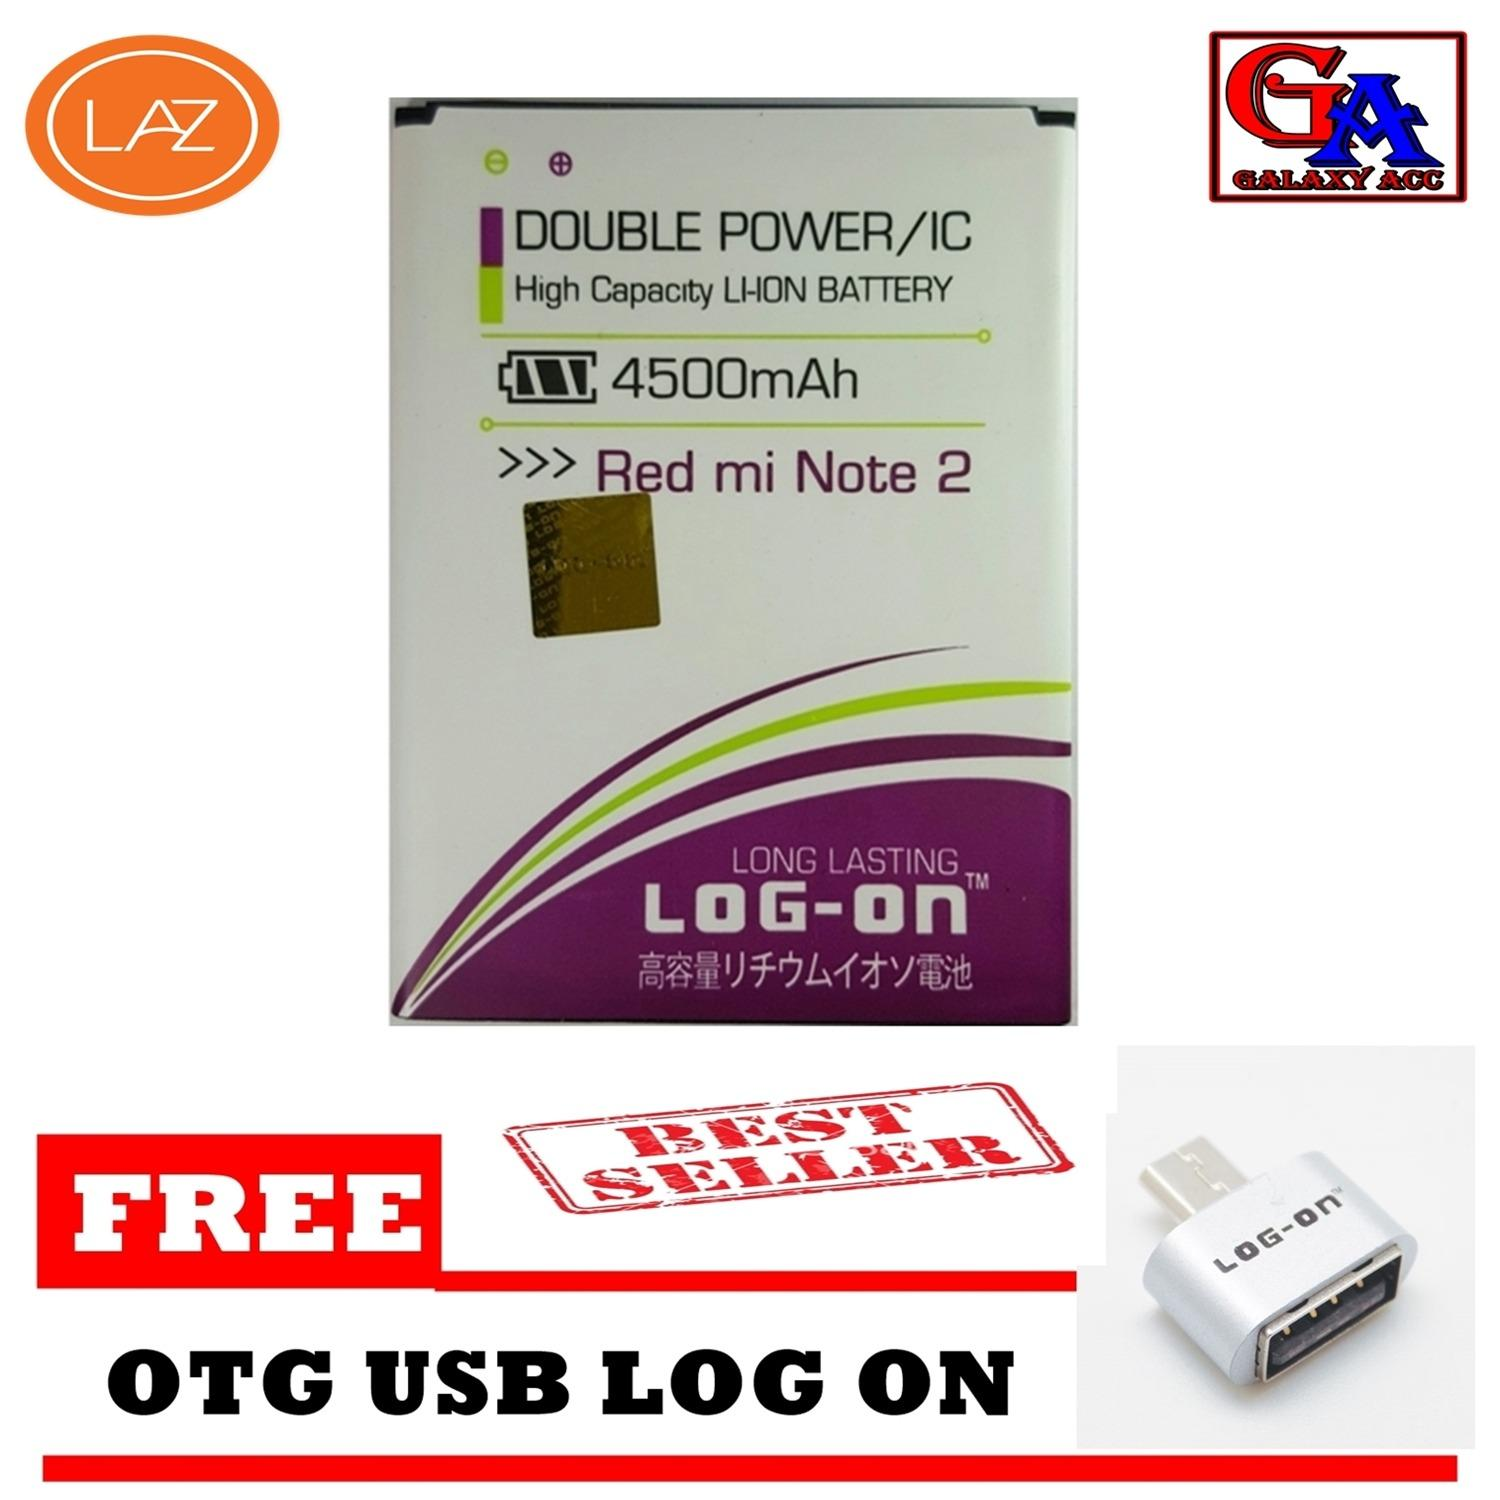 LOG-ON Battery Baterai Double Power Xiaomi Redmi Note 2 - 4500mAh - GRATIS OTG